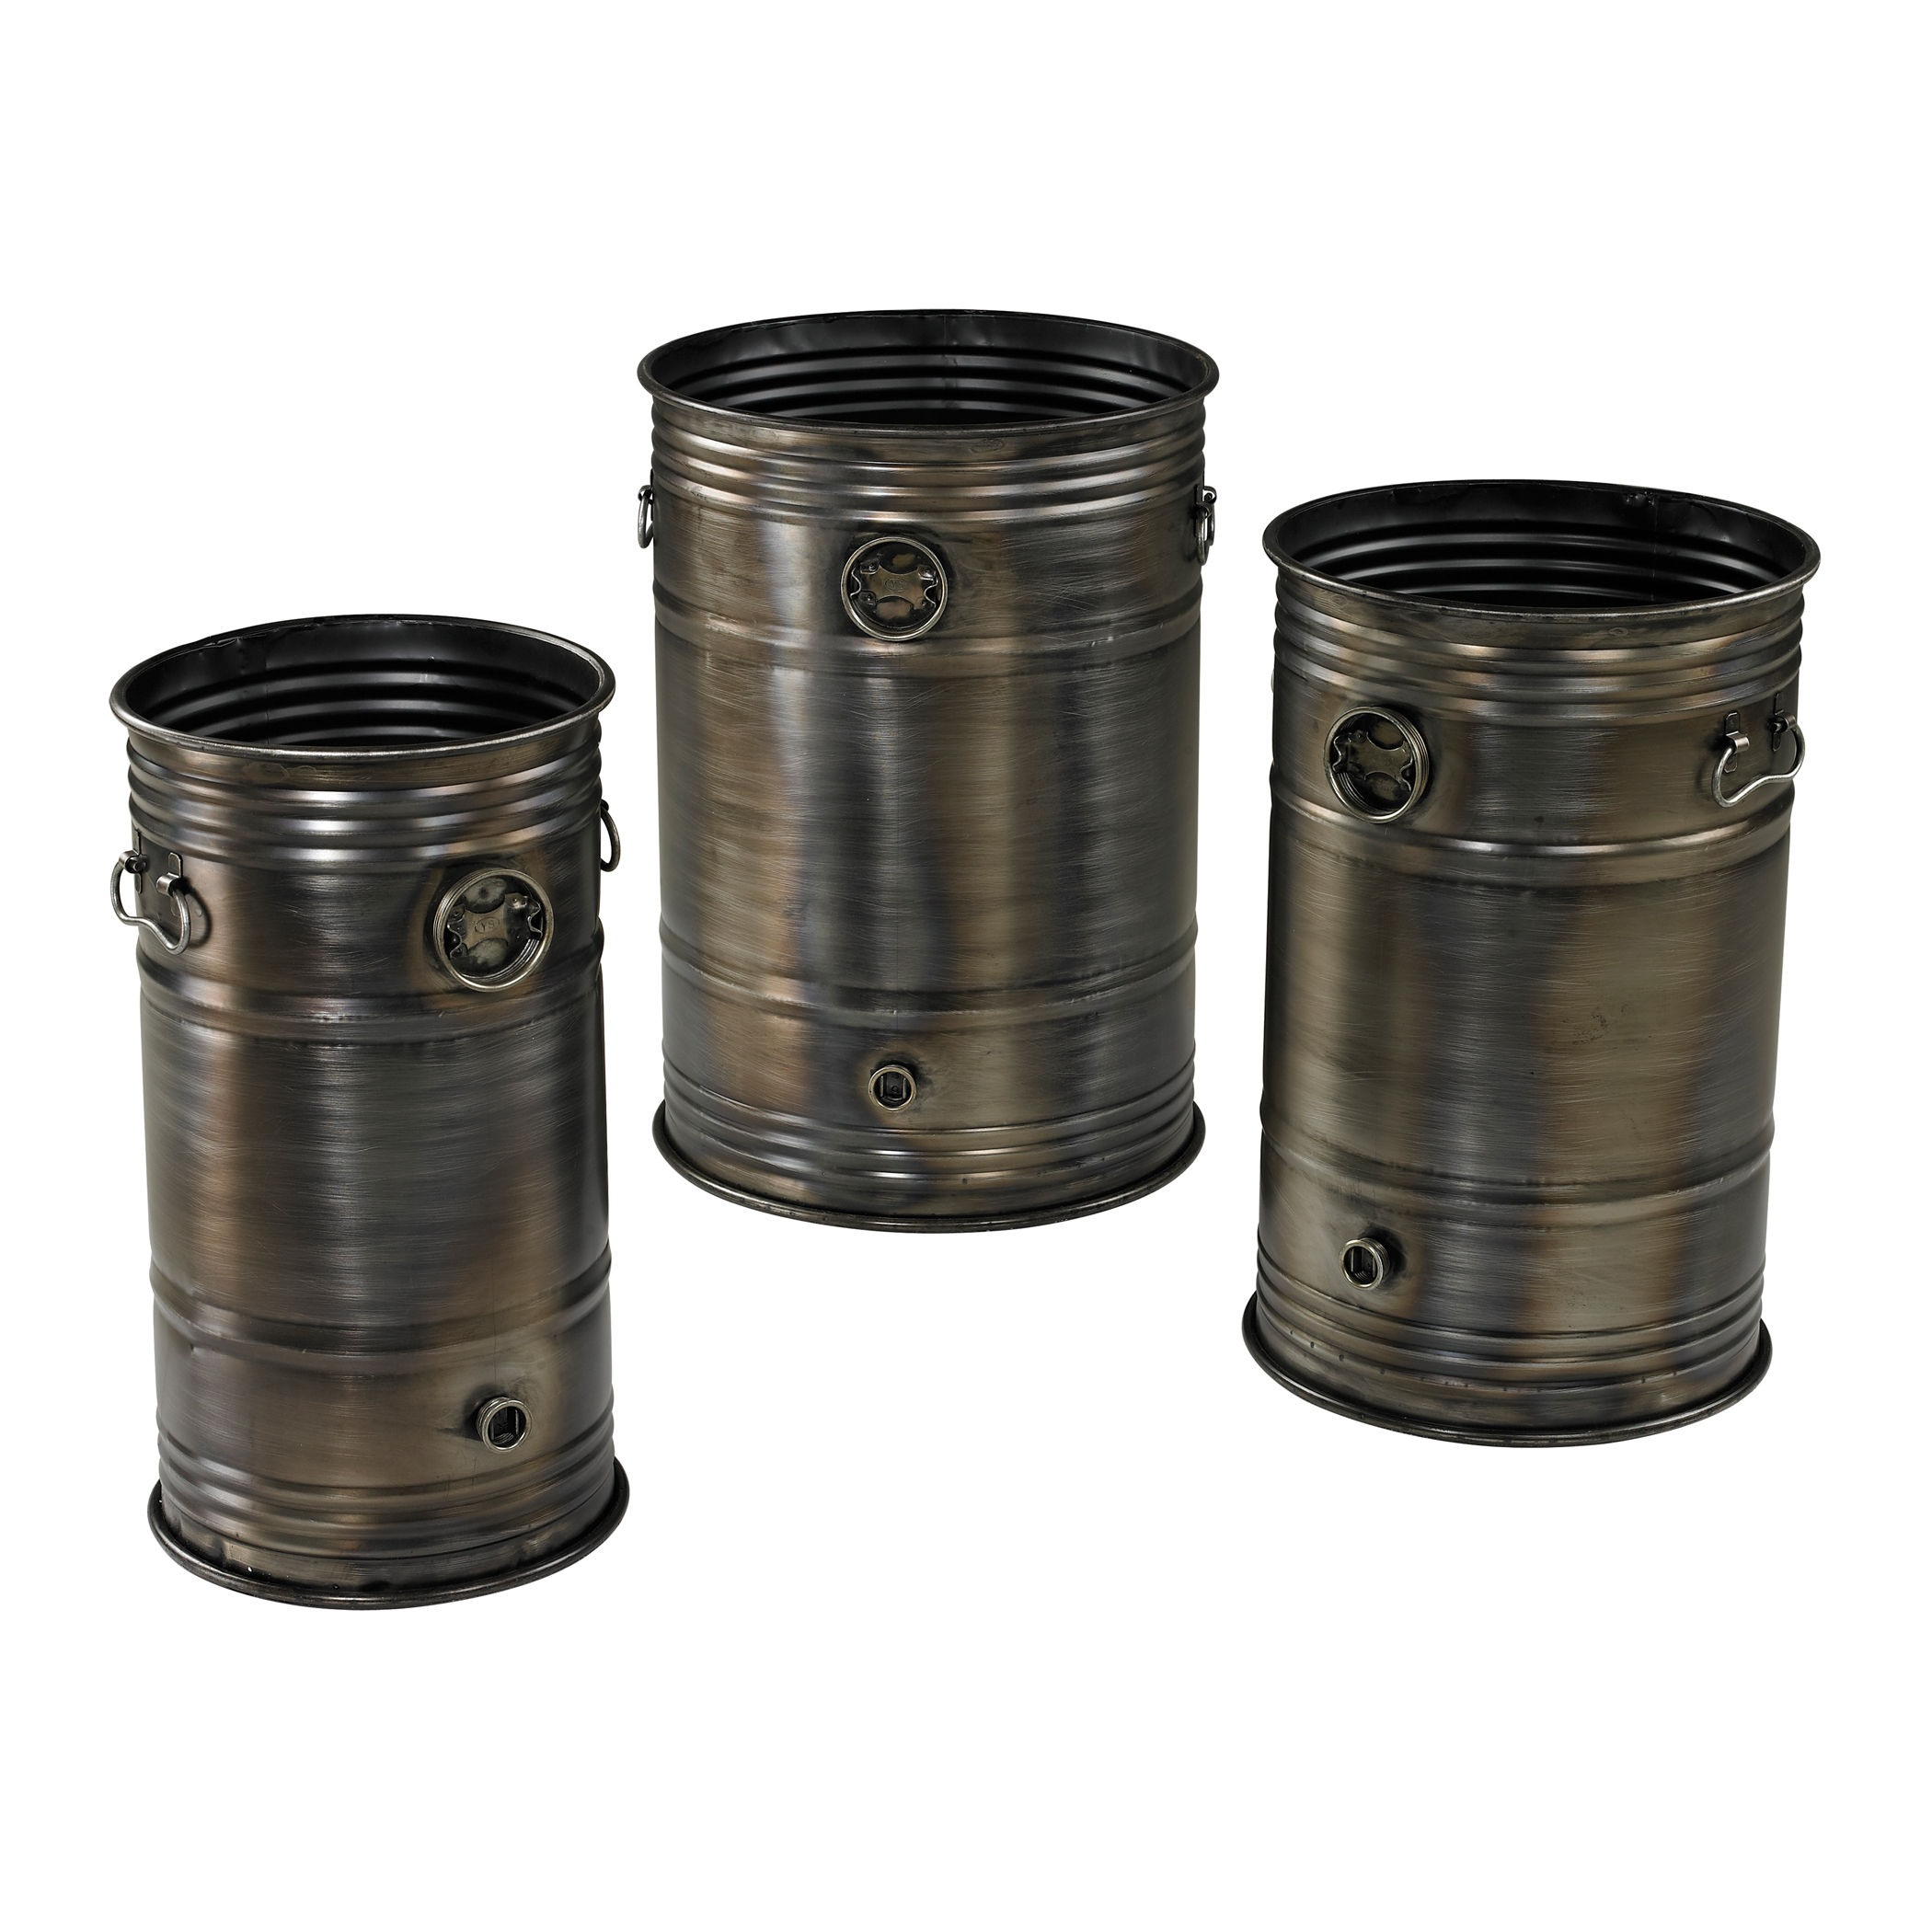 Sterling Industries-26-8668/S3-20 Inch Industrial Oil Drum Planter (Set of 3)  Oxidised Metal Finish